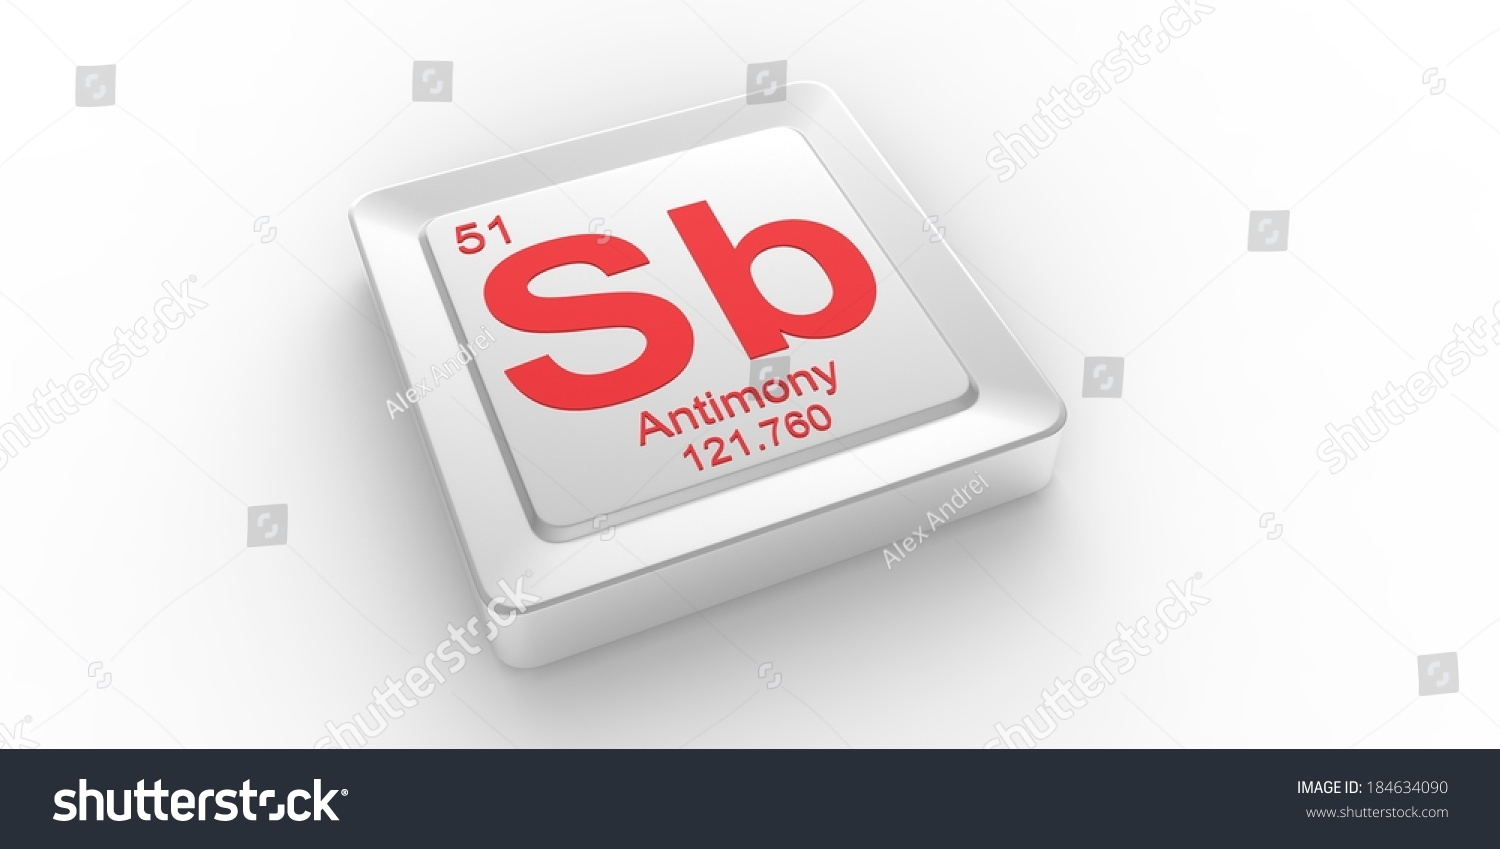 Sb symbol periodic table choice image periodic table images sb symbol 51 material for antimony chemical element of the sb symbol 51 material for antimony gamestrikefo Images